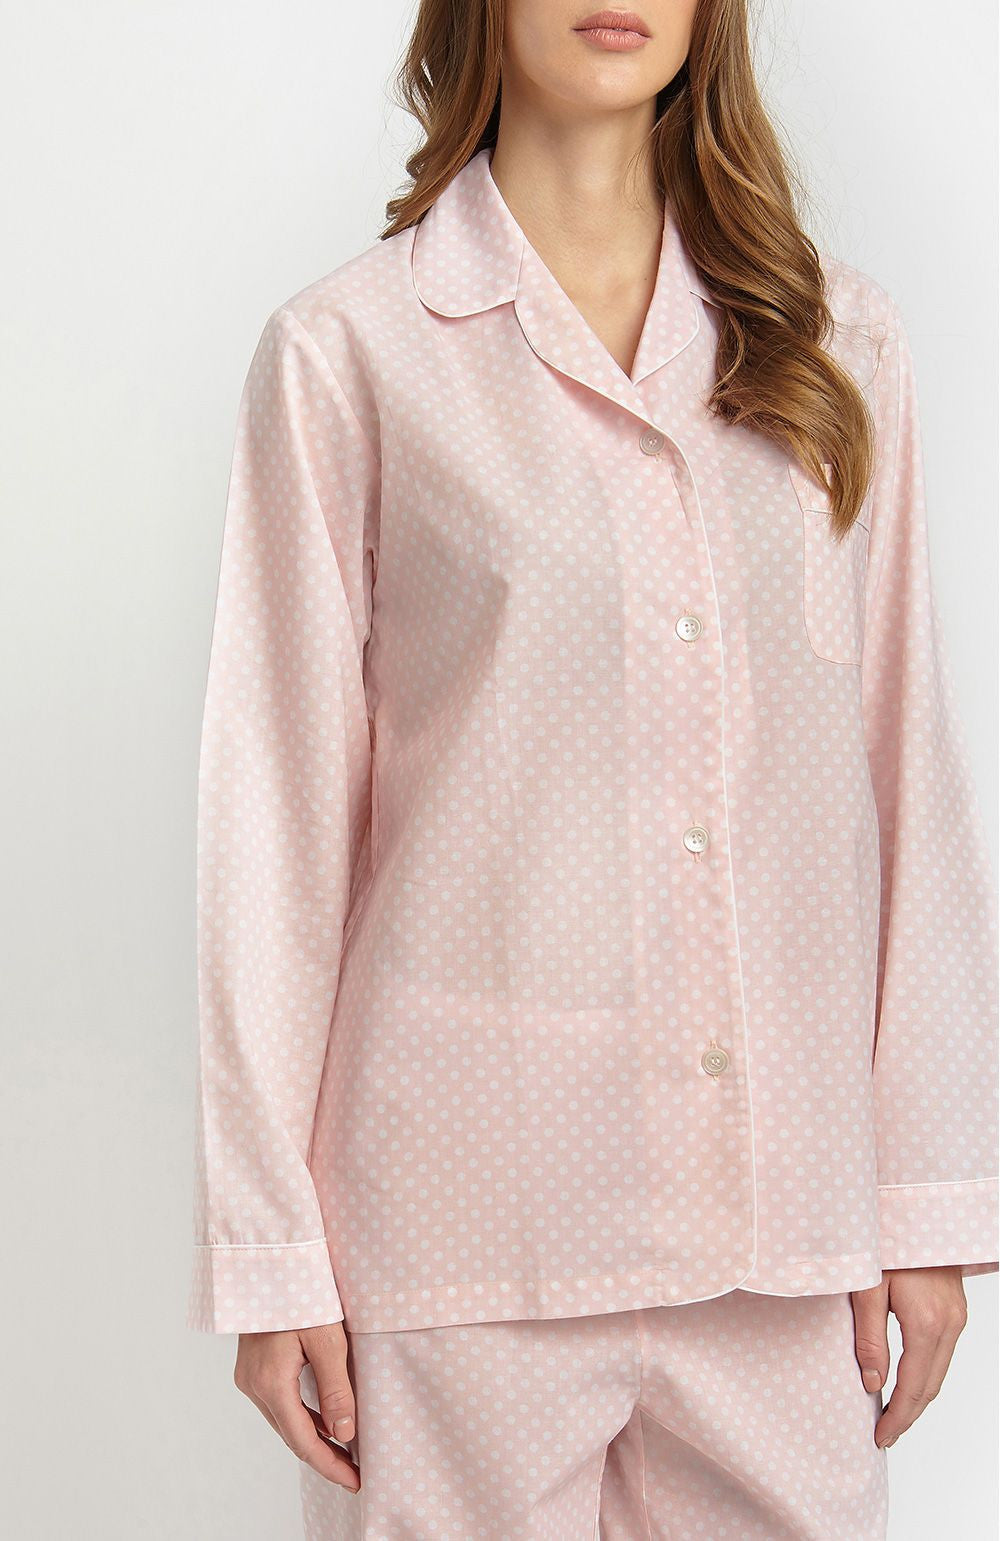 Cotton Pyjamas (clfp)  -  Pink Polka Dot | Bonsoir of London